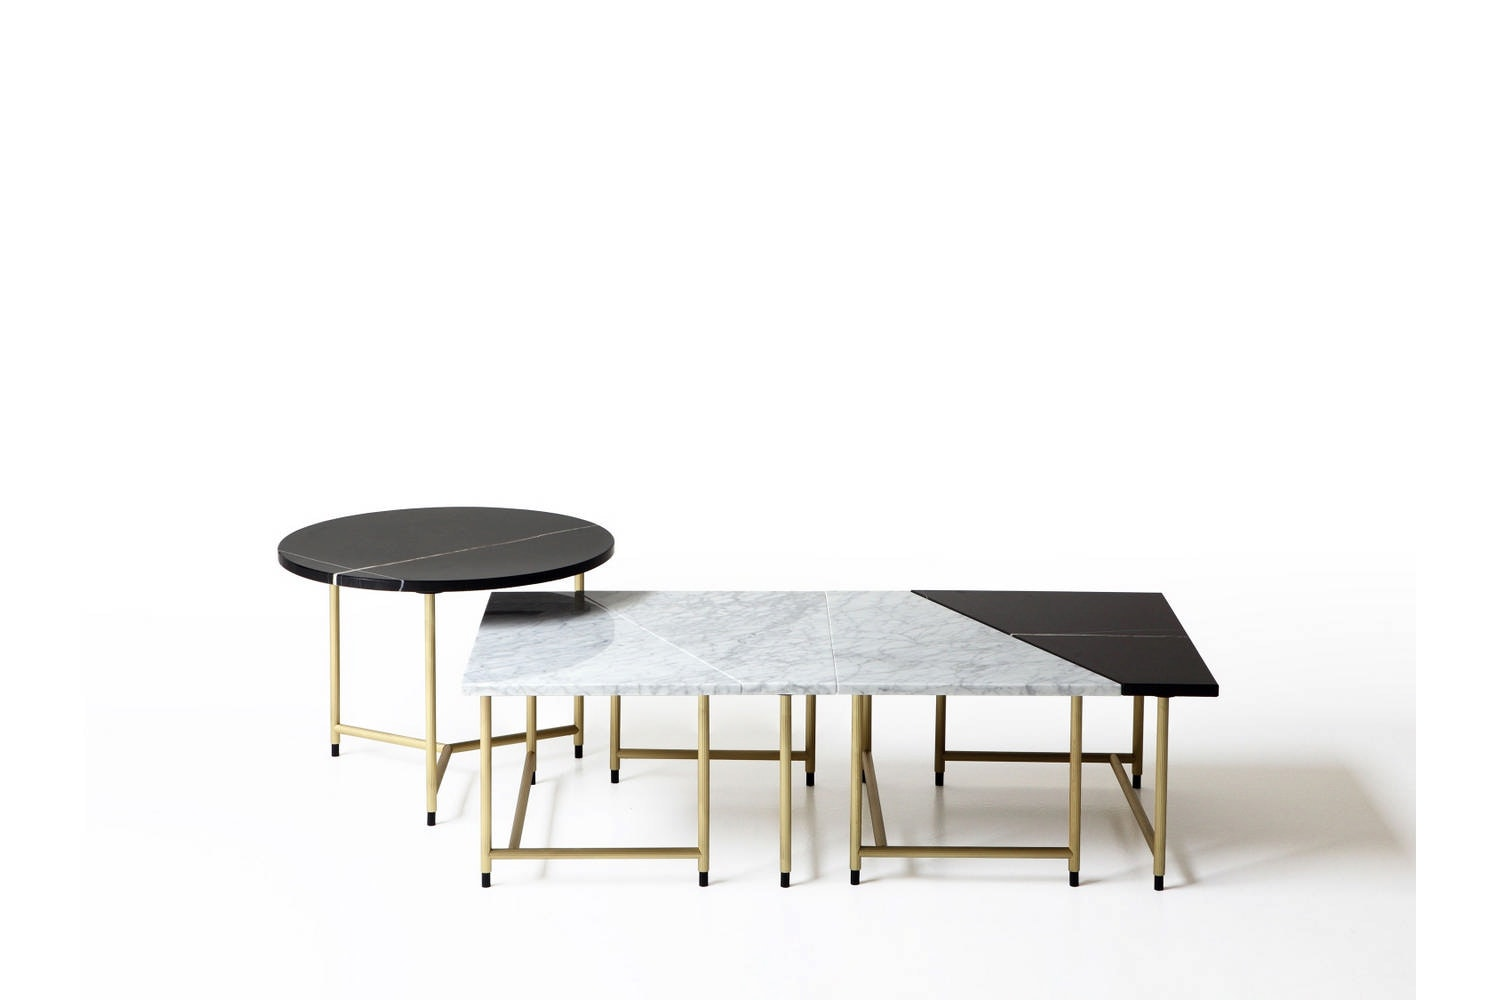 Palladio Coffee Table by GamFratesi for Porro